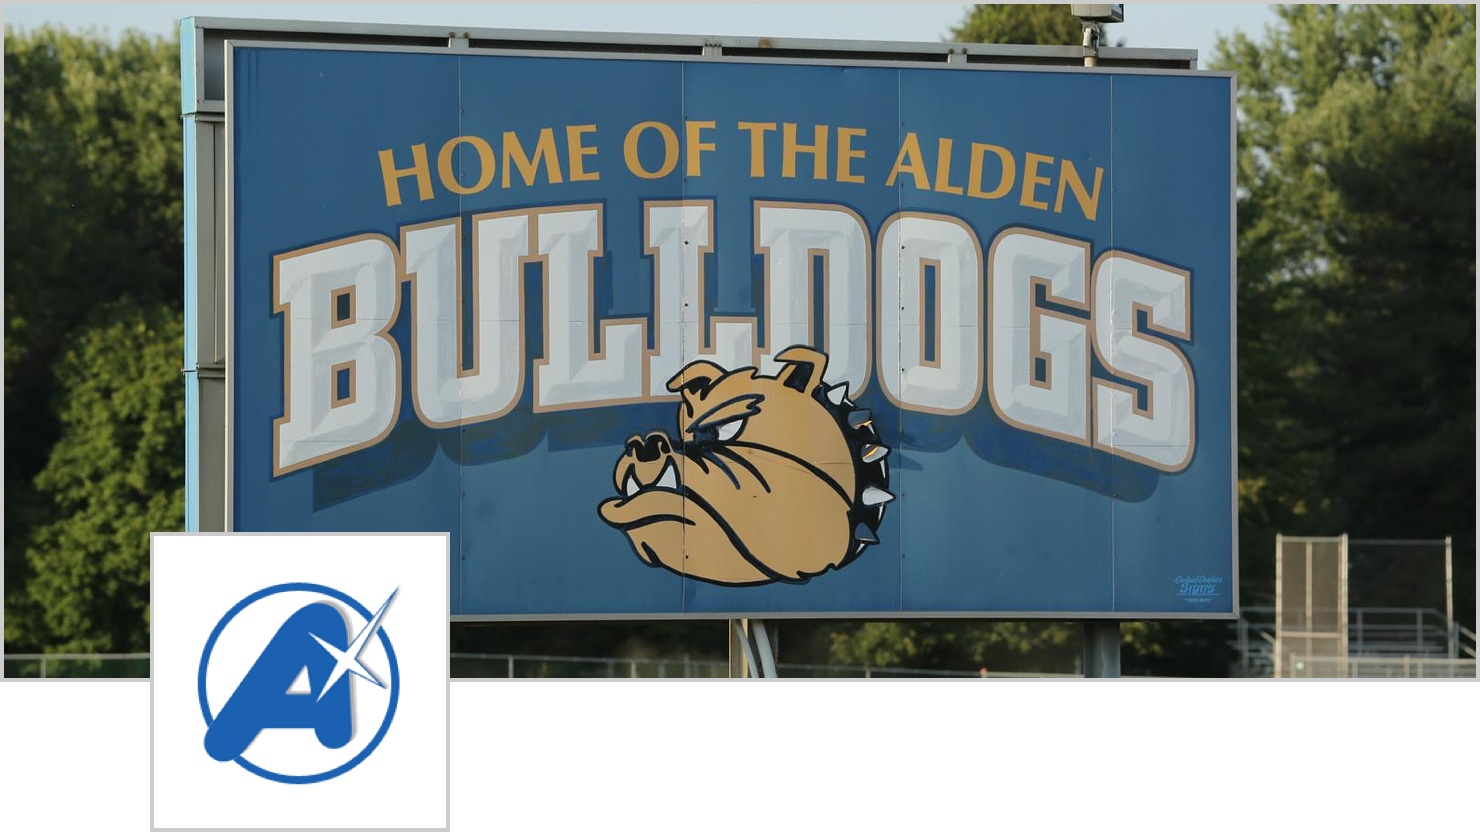 Alden School District communicates with clarity and efficiency across schools